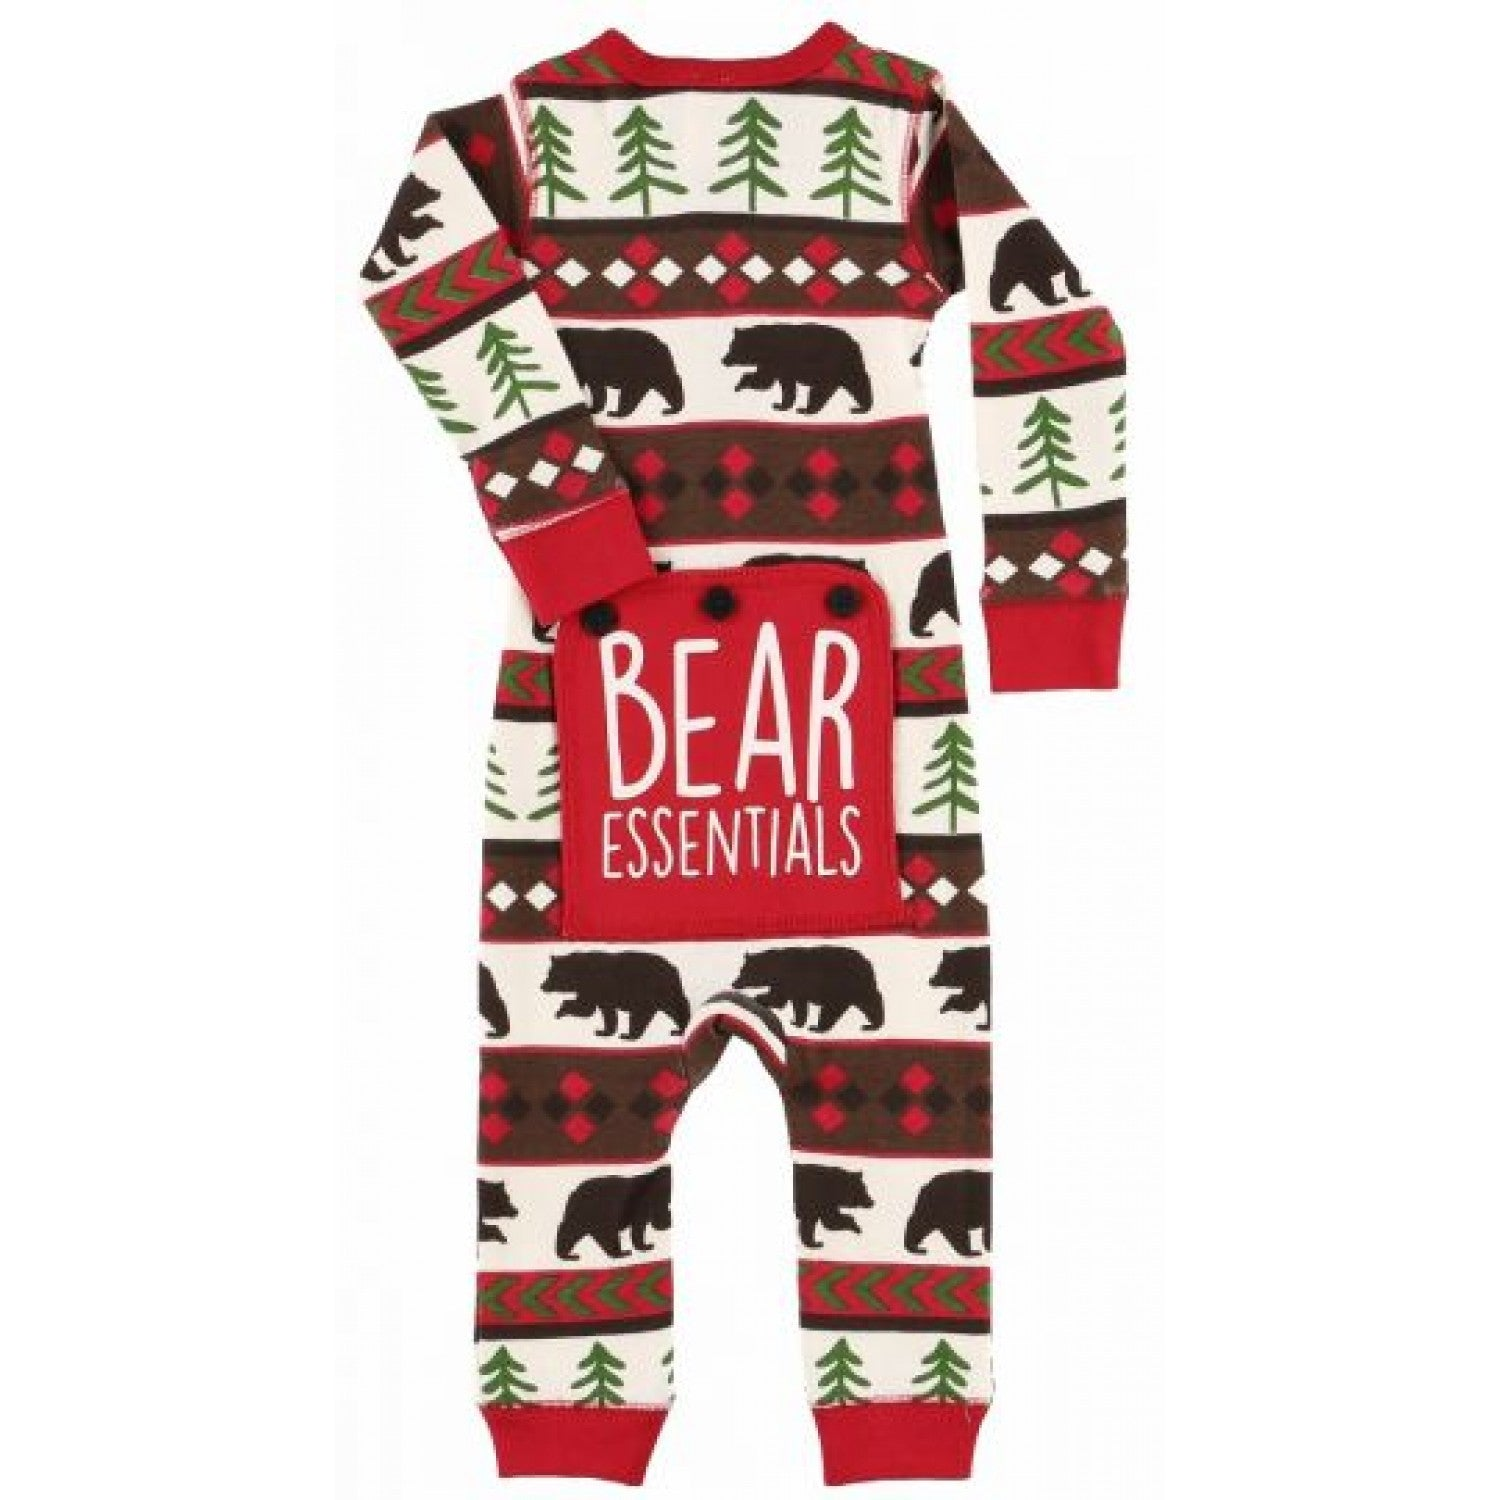 Bear Essentials Onesies - All sizes